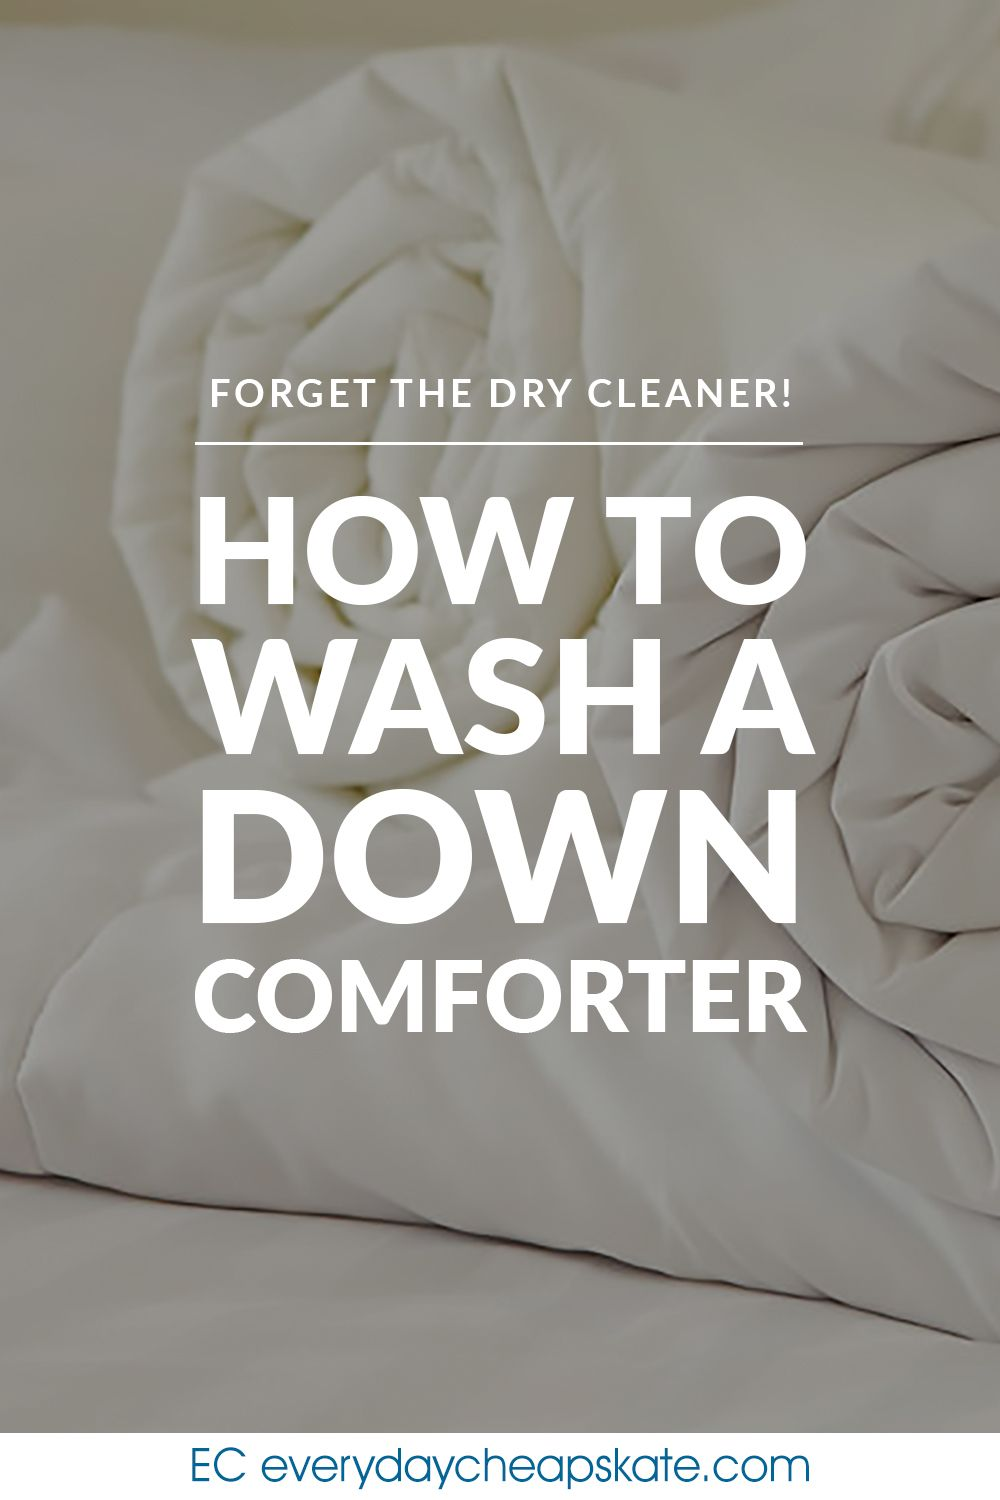 Forget The Dry Cleaner How To Wash A Down Comforter Washing Down Comforter